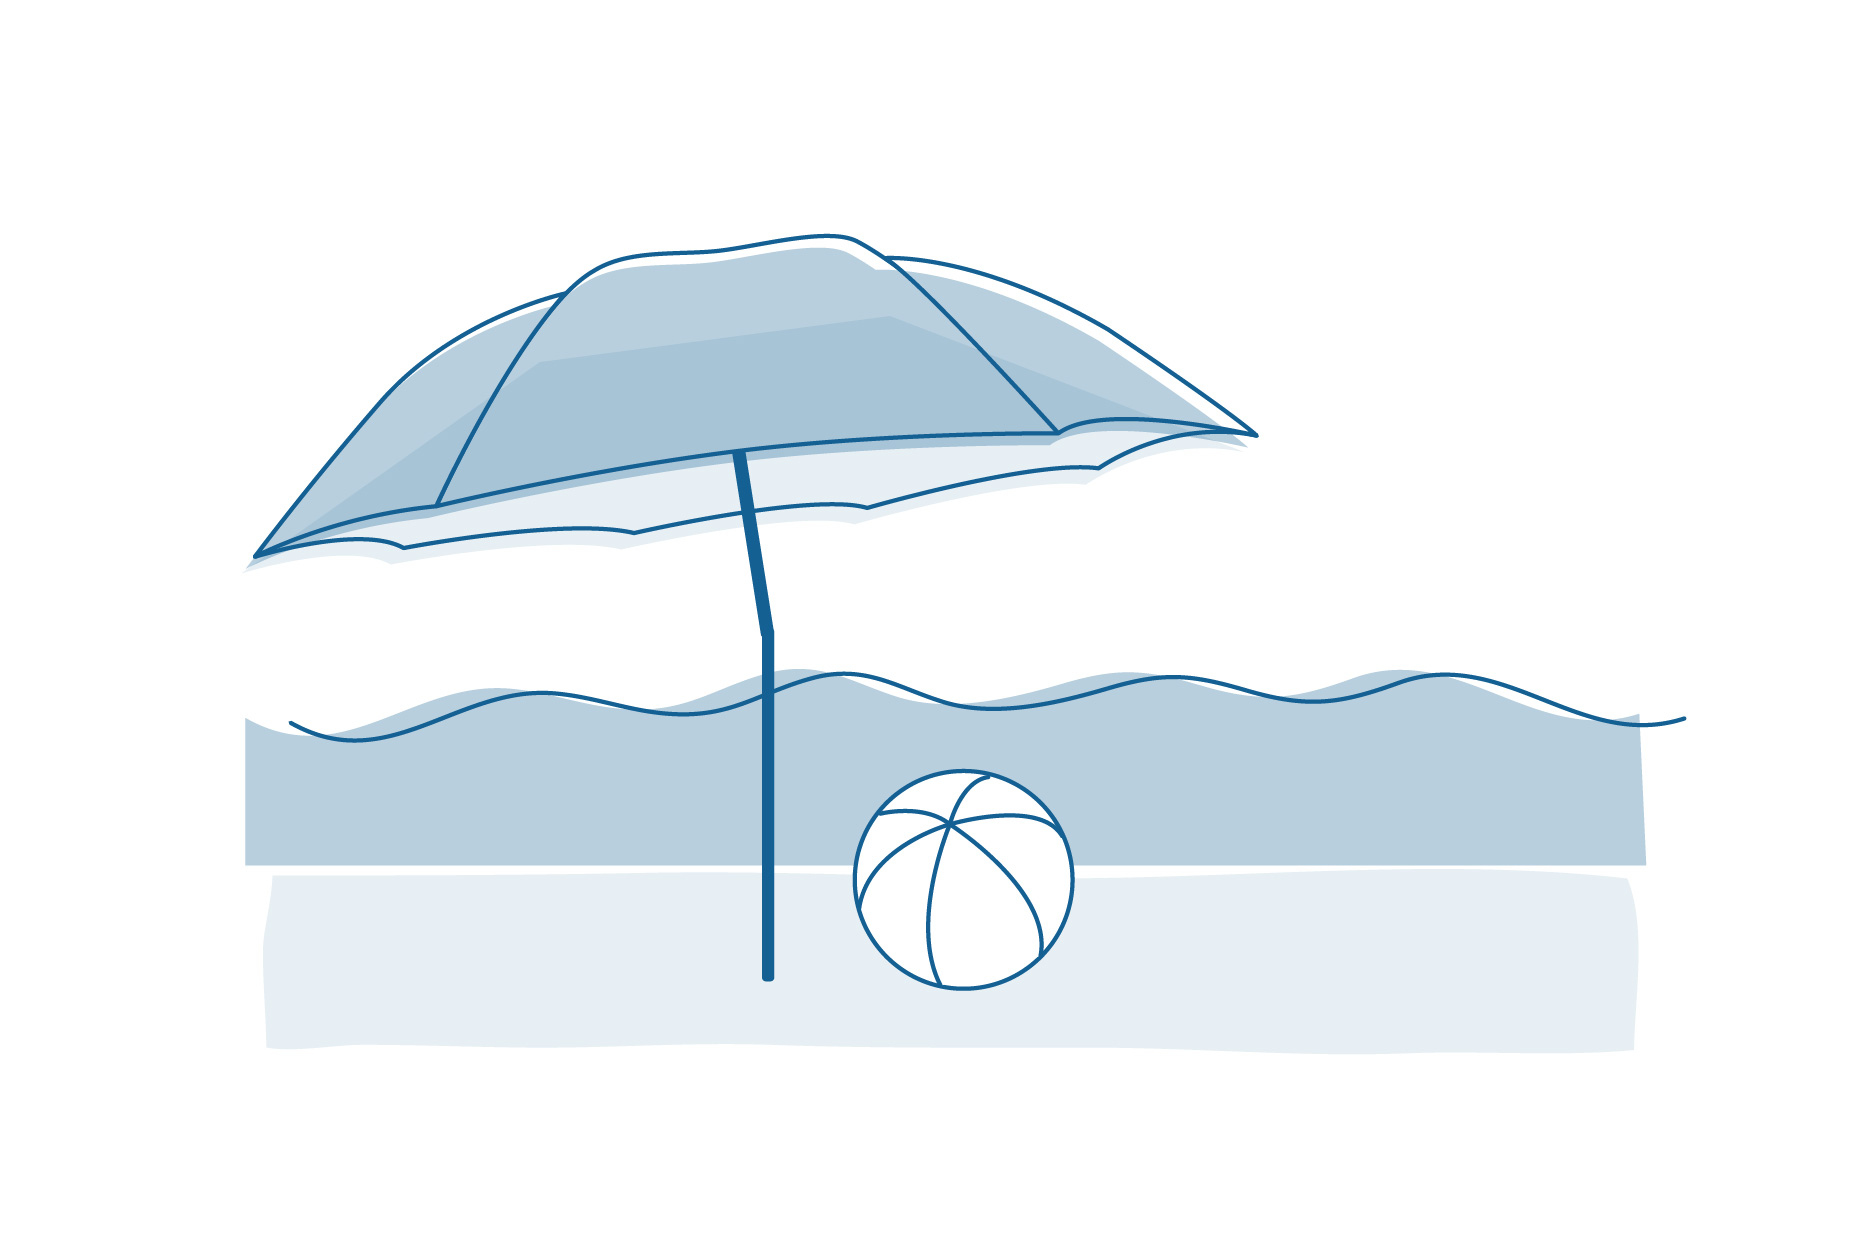 An illustration of a beach umbrella and beach ball in front of the ocean.